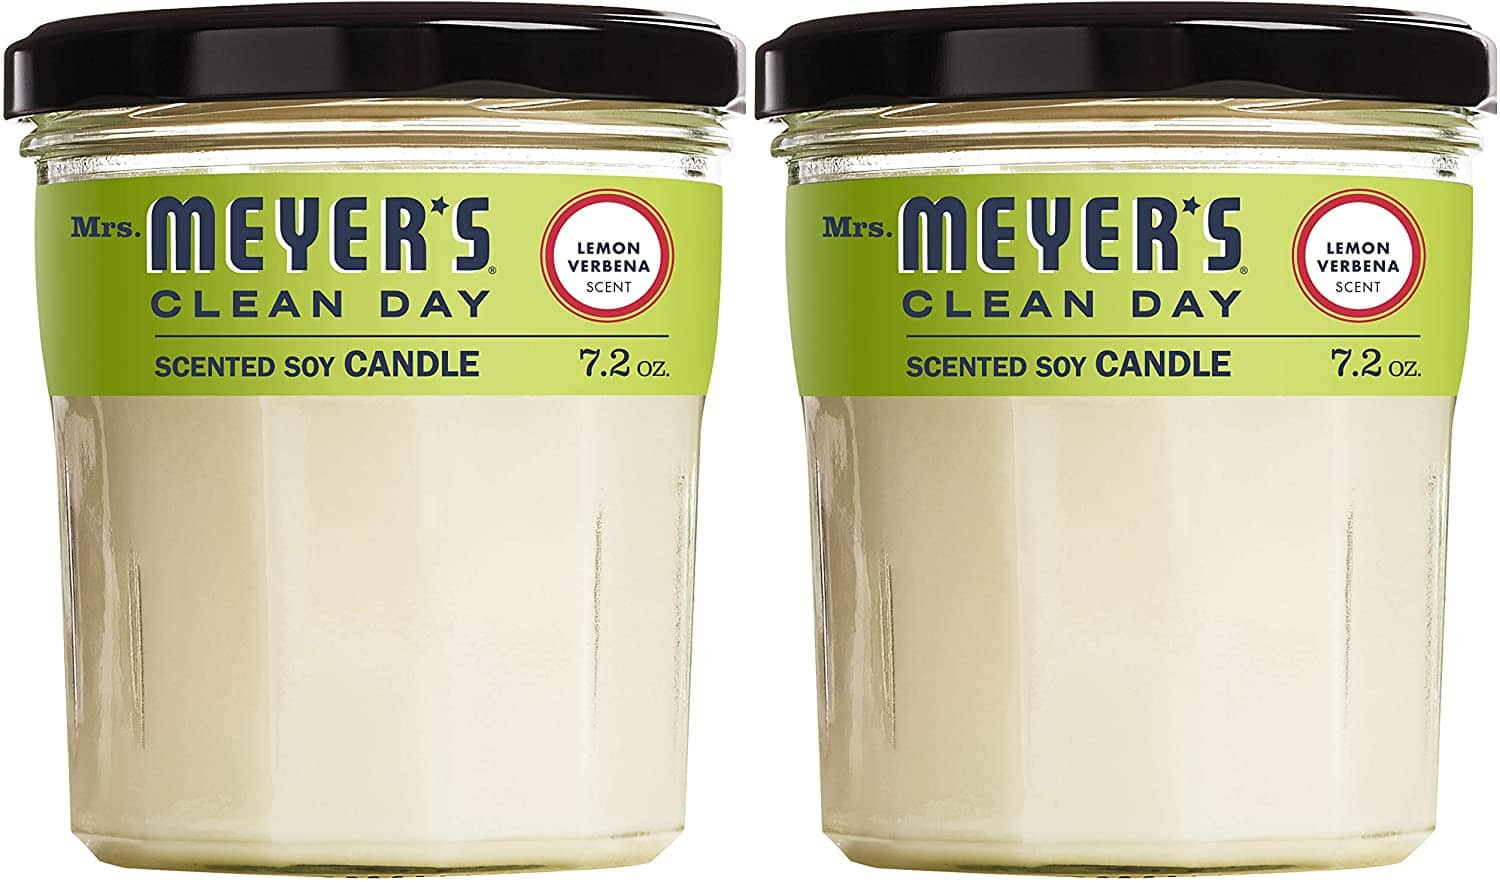 2-Pack 7.2-Oz Mrs. Meyer's Clean Day Scented Soy Aromatherapy Candle (Lemon Verbena) $7 w/ S&S + Free Shipping w/ Prime or $25+